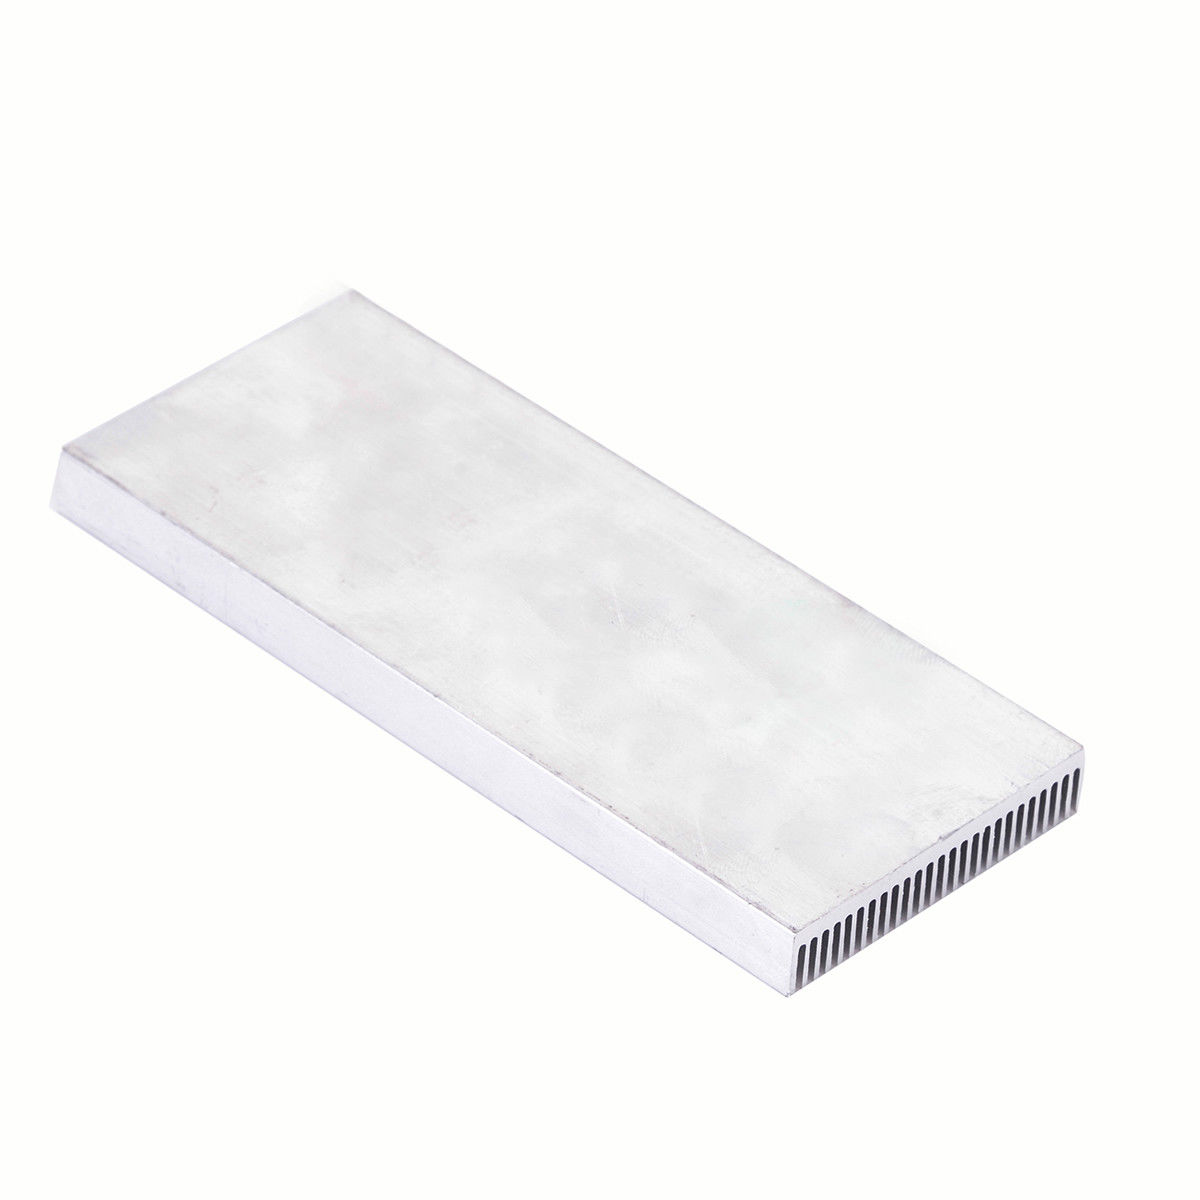 300*156*15mm Aluminum Heatsink for 15*3W or 40*1W Power LED